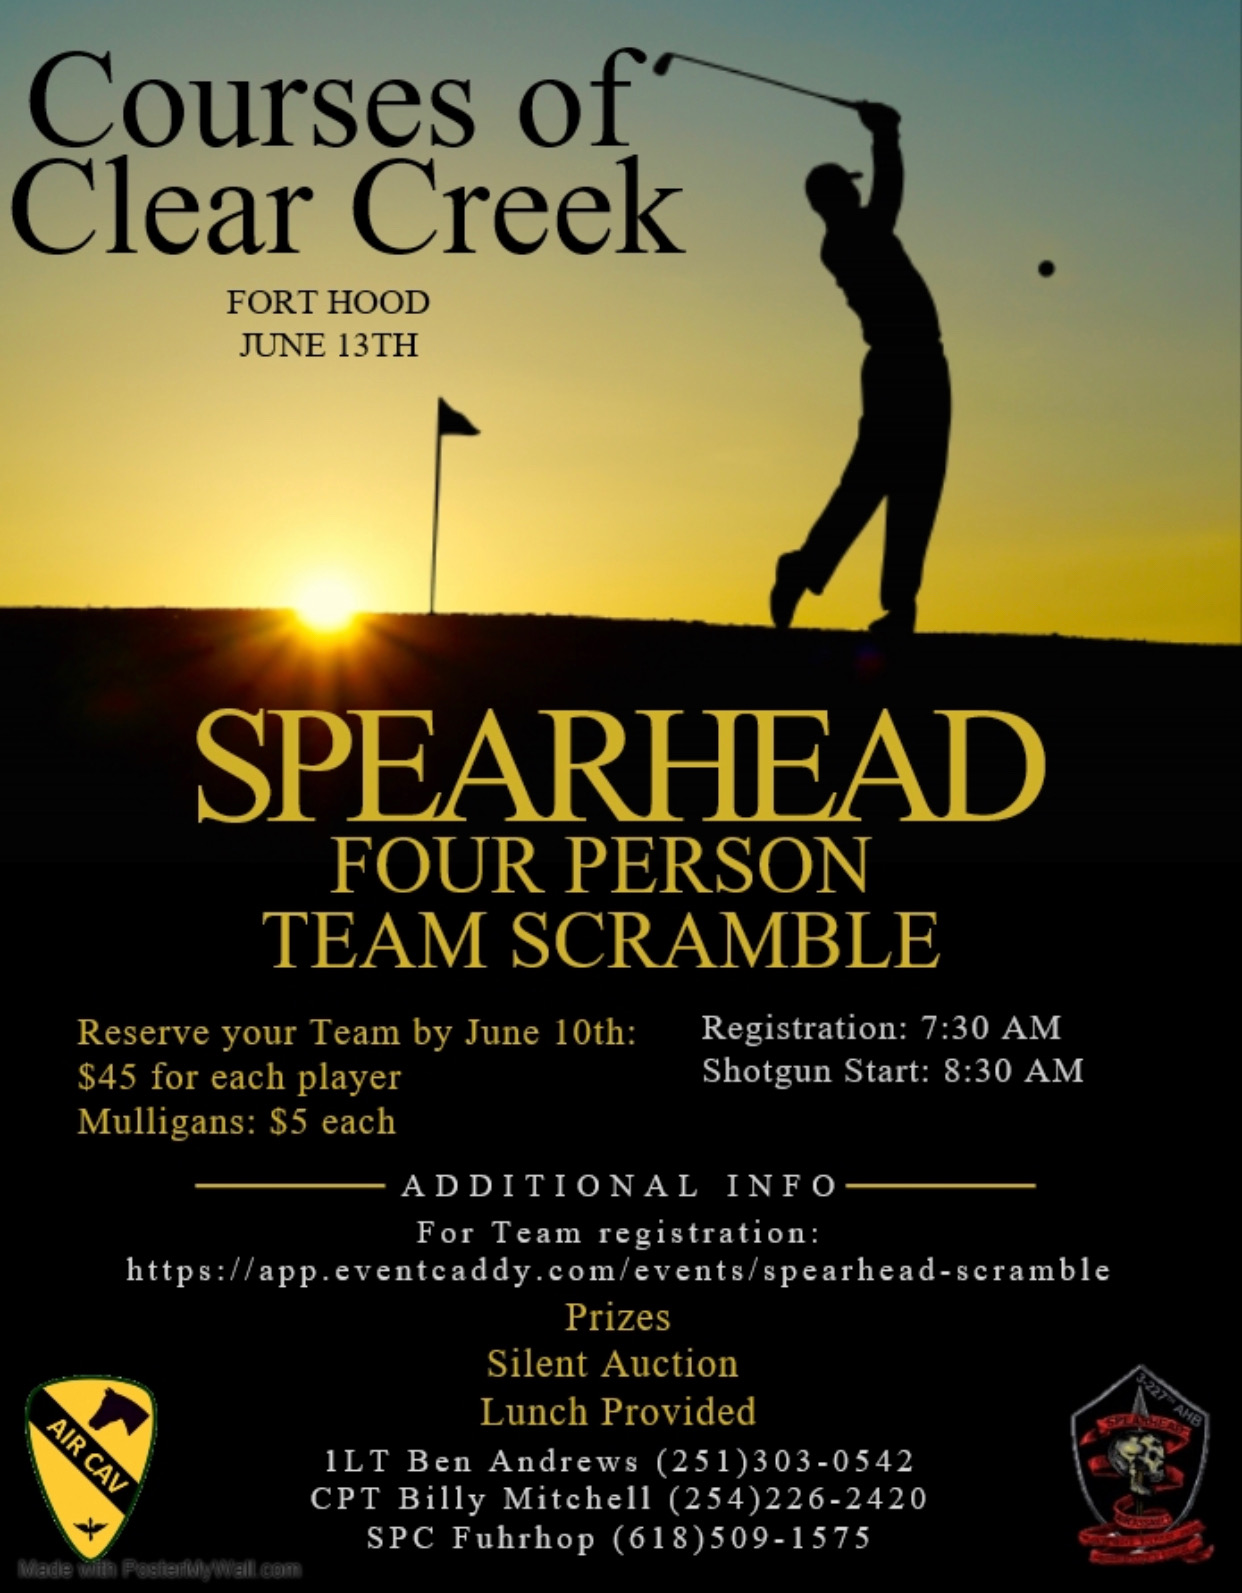 Event home page - Spearhead Scramble